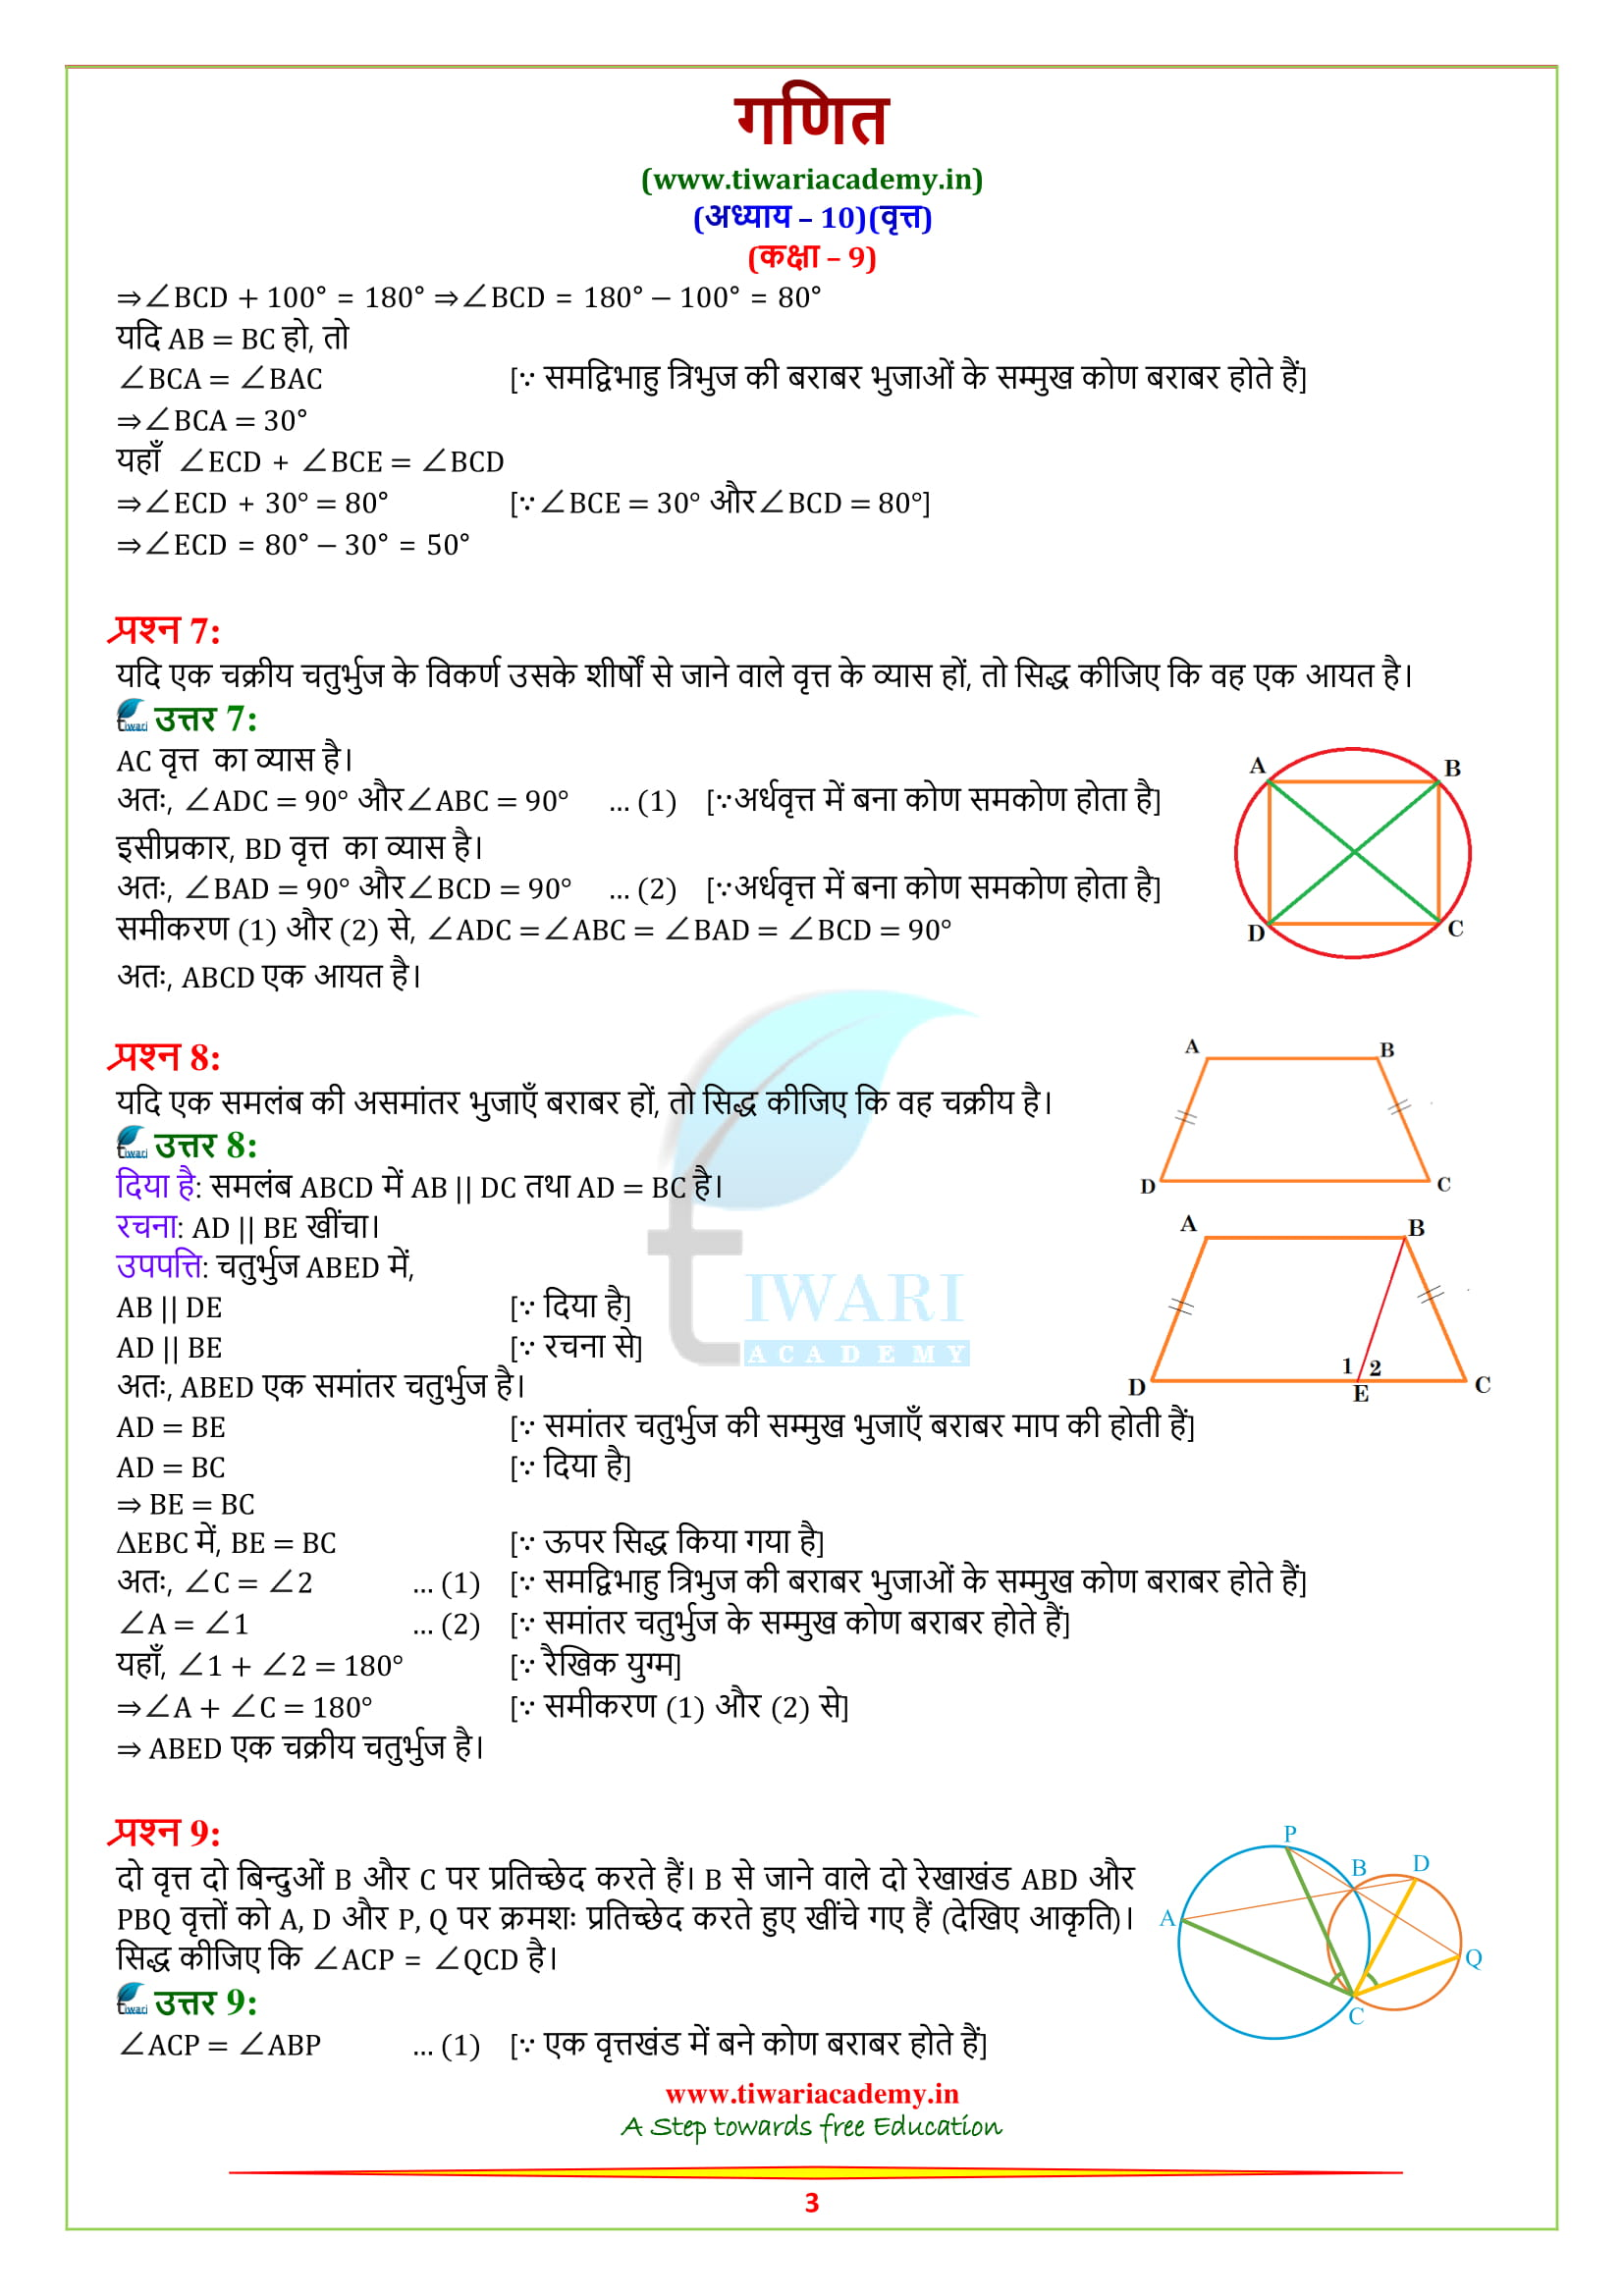 9 Maths Exercise 10.5 solutions in hindi for high school up board